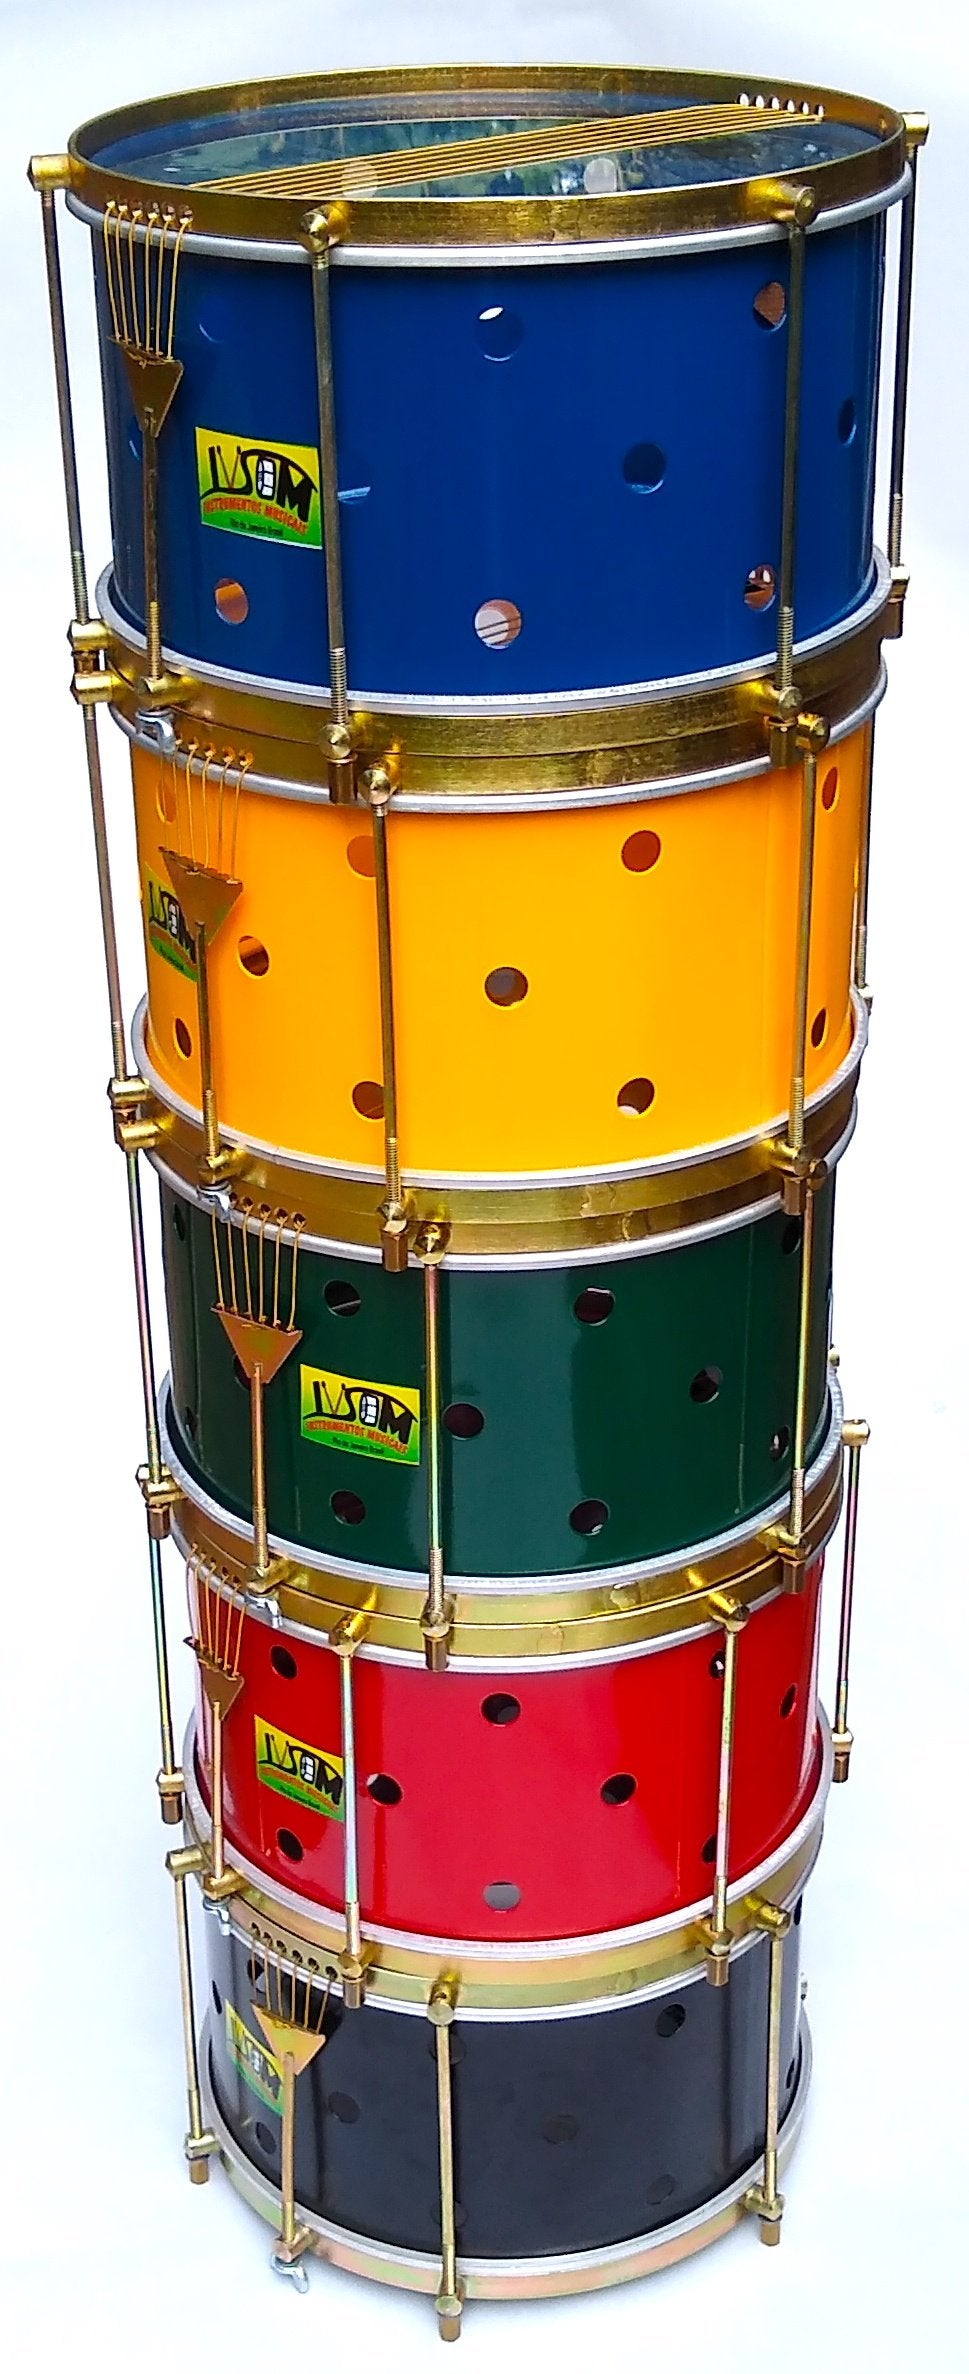 Multiple colors stack of drums! IVSOM drums called caixas stacked with brass colored hardware, six strings, clear dum heads and a powder coated shell. The drum shell has small holes drilled into it.